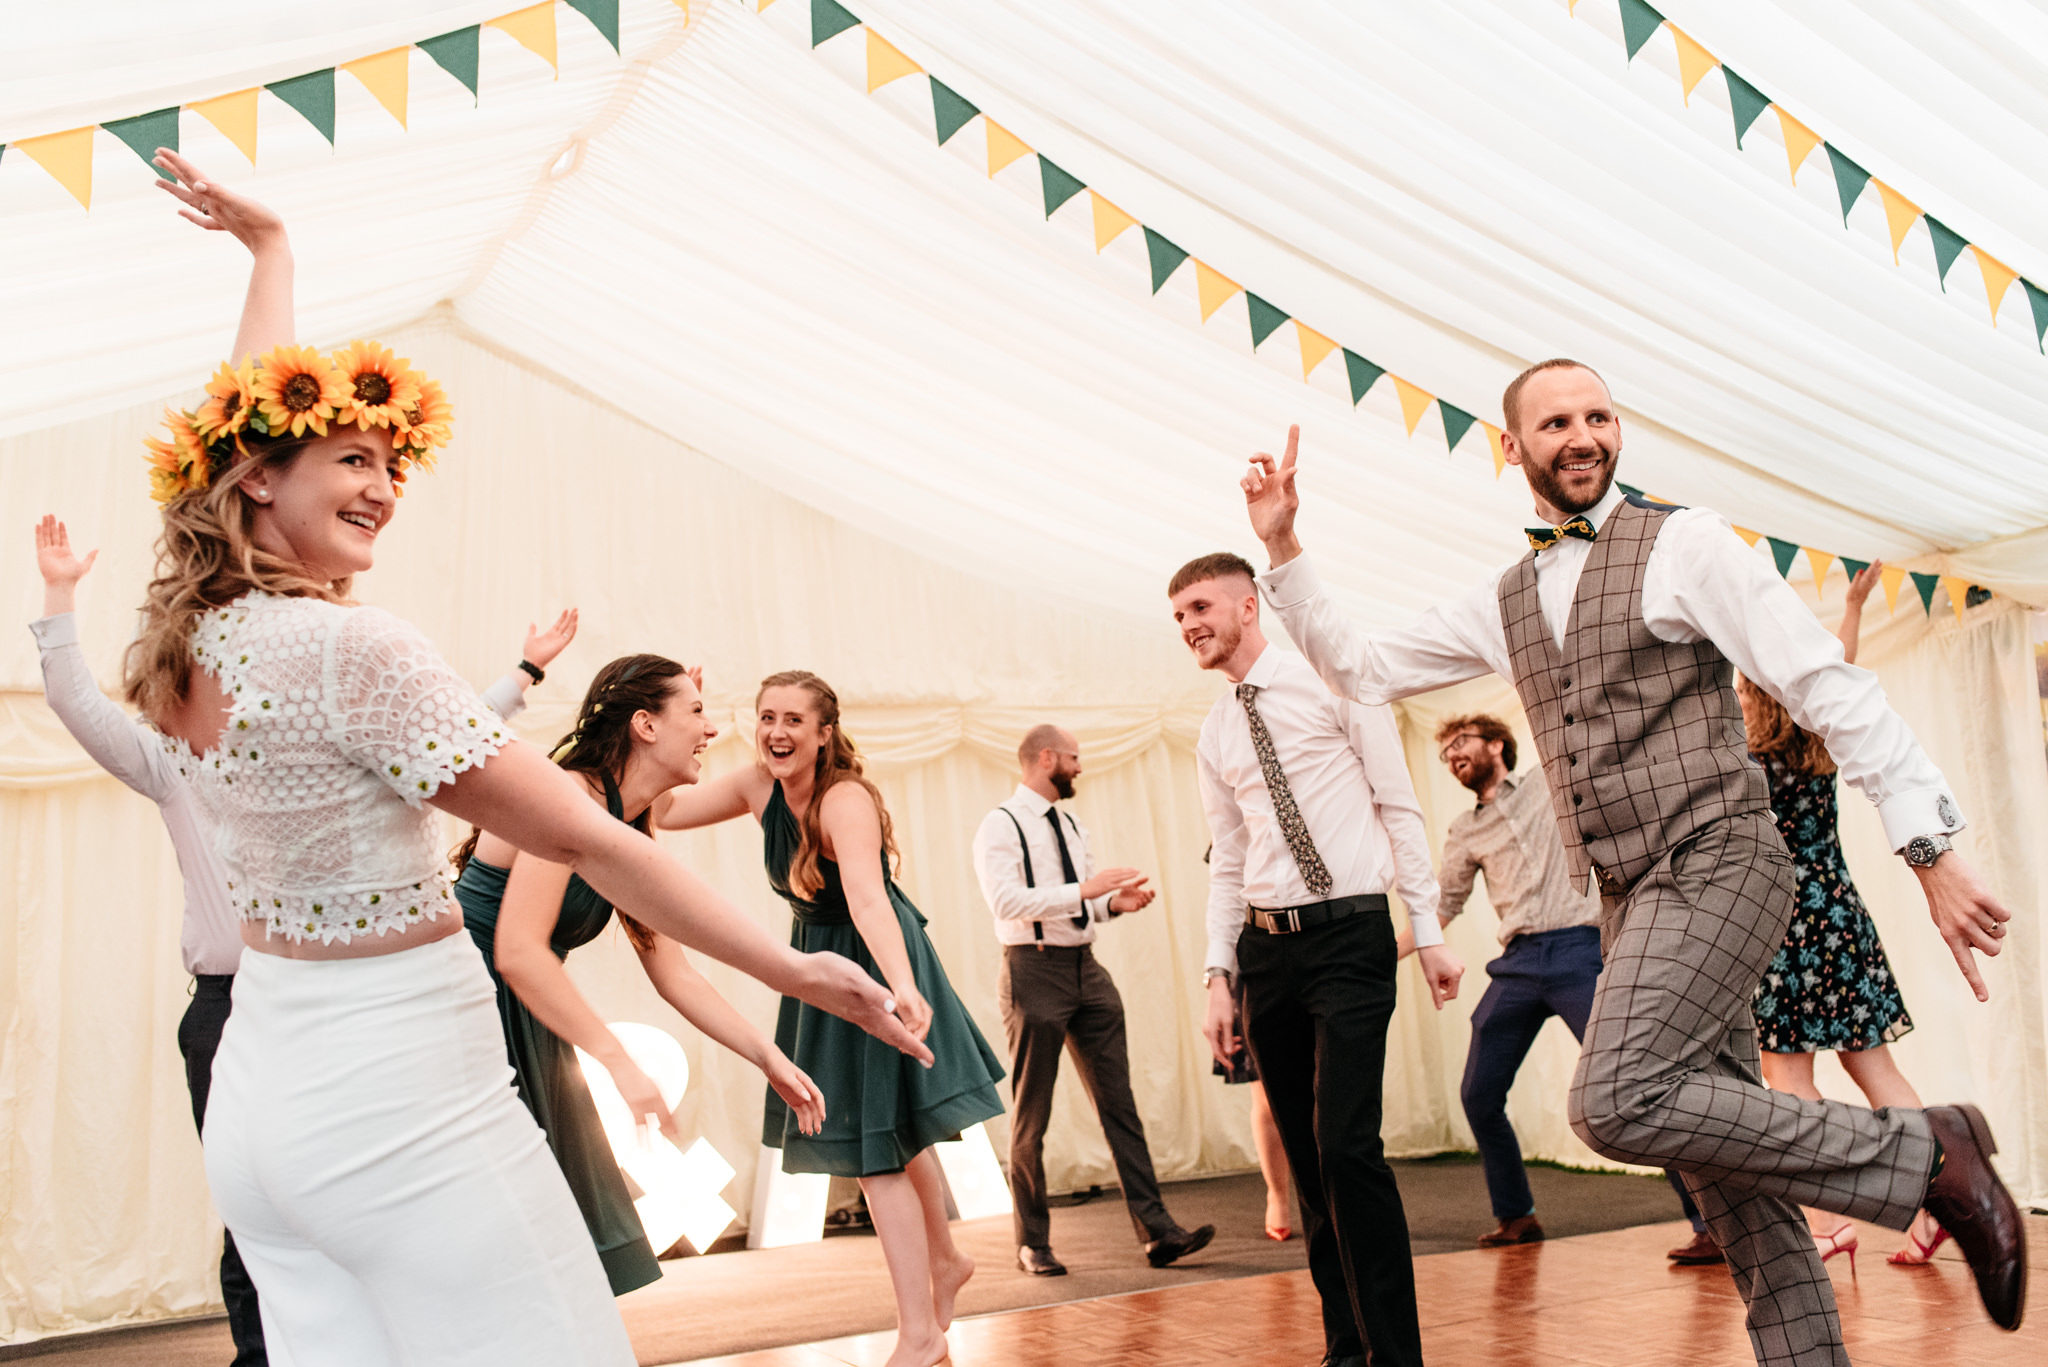 grand finale for first dance with guests